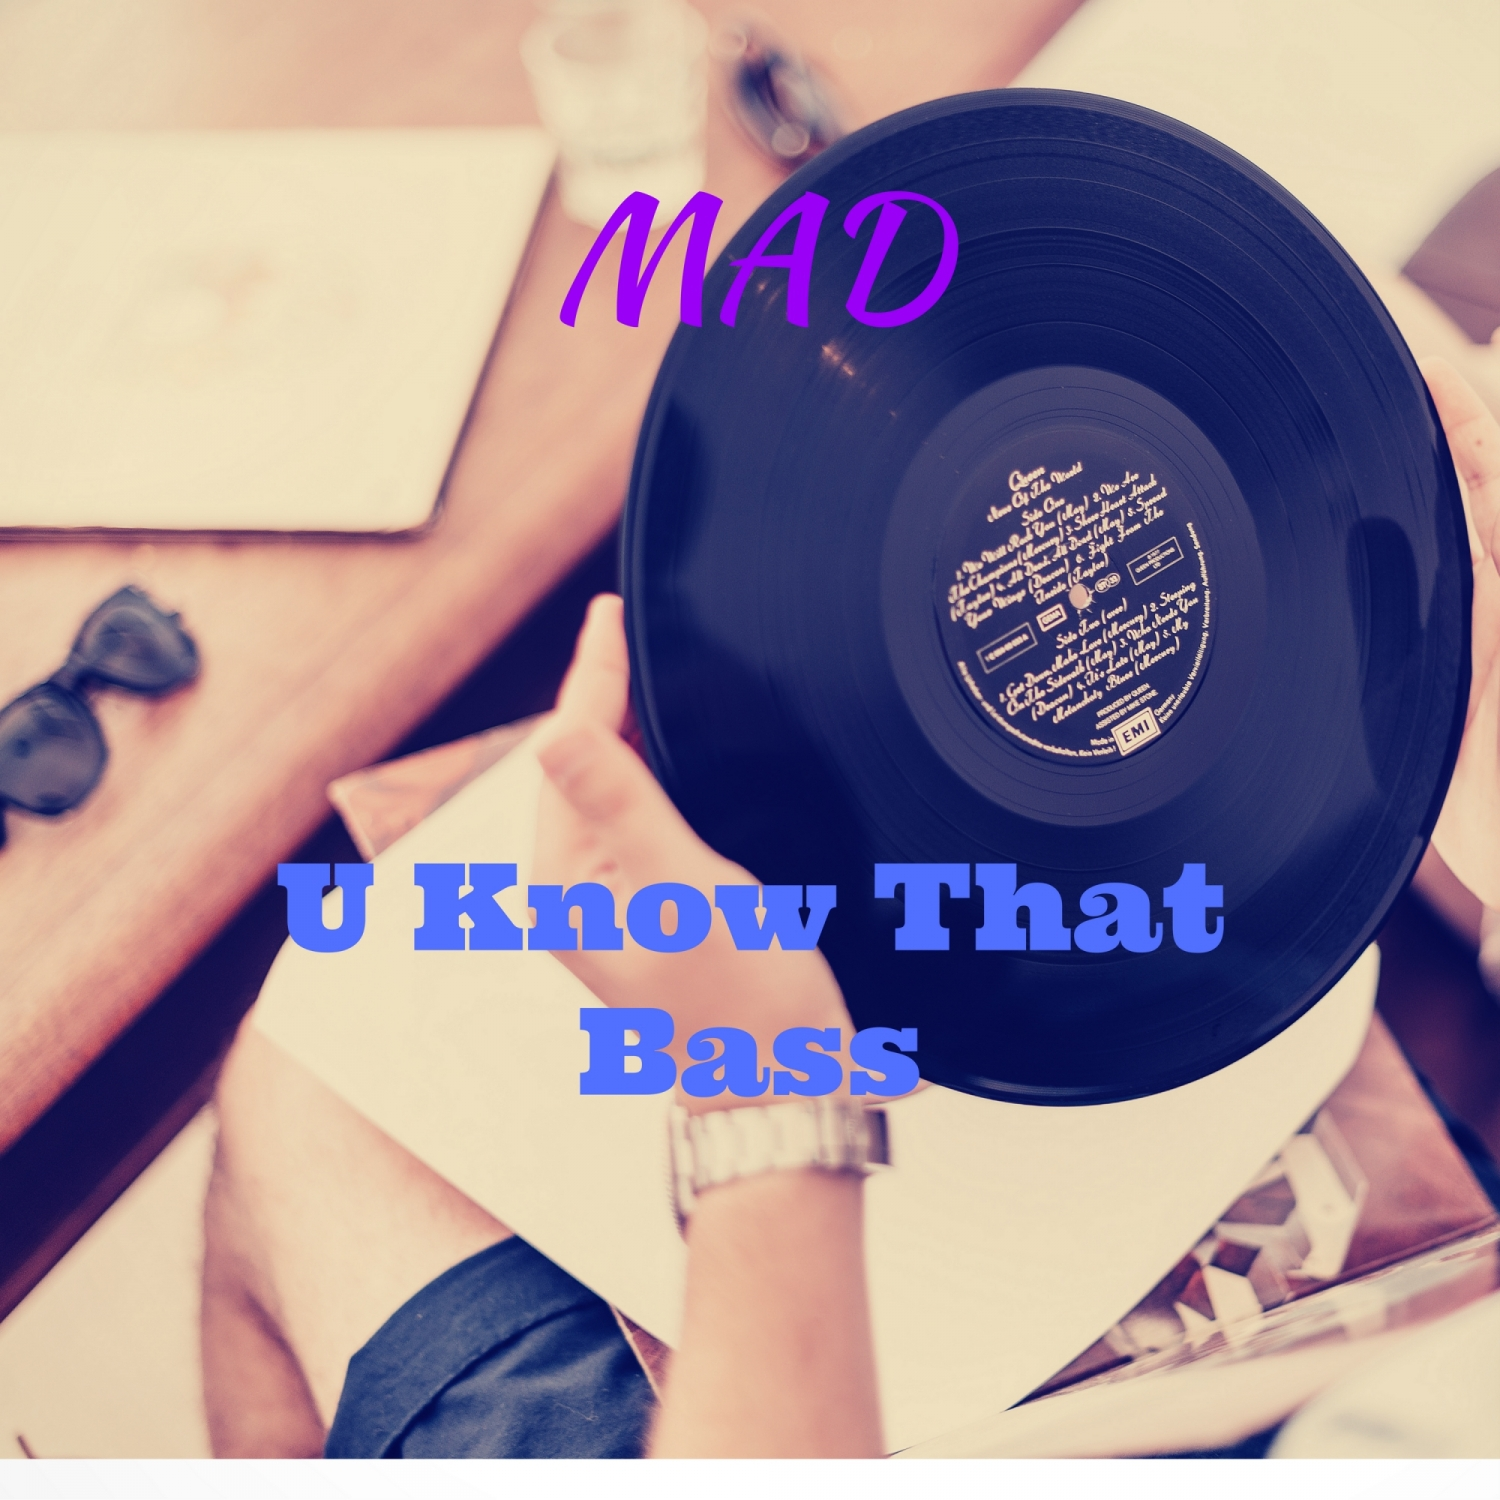 Mad - U Know That Bass (Original Mix)